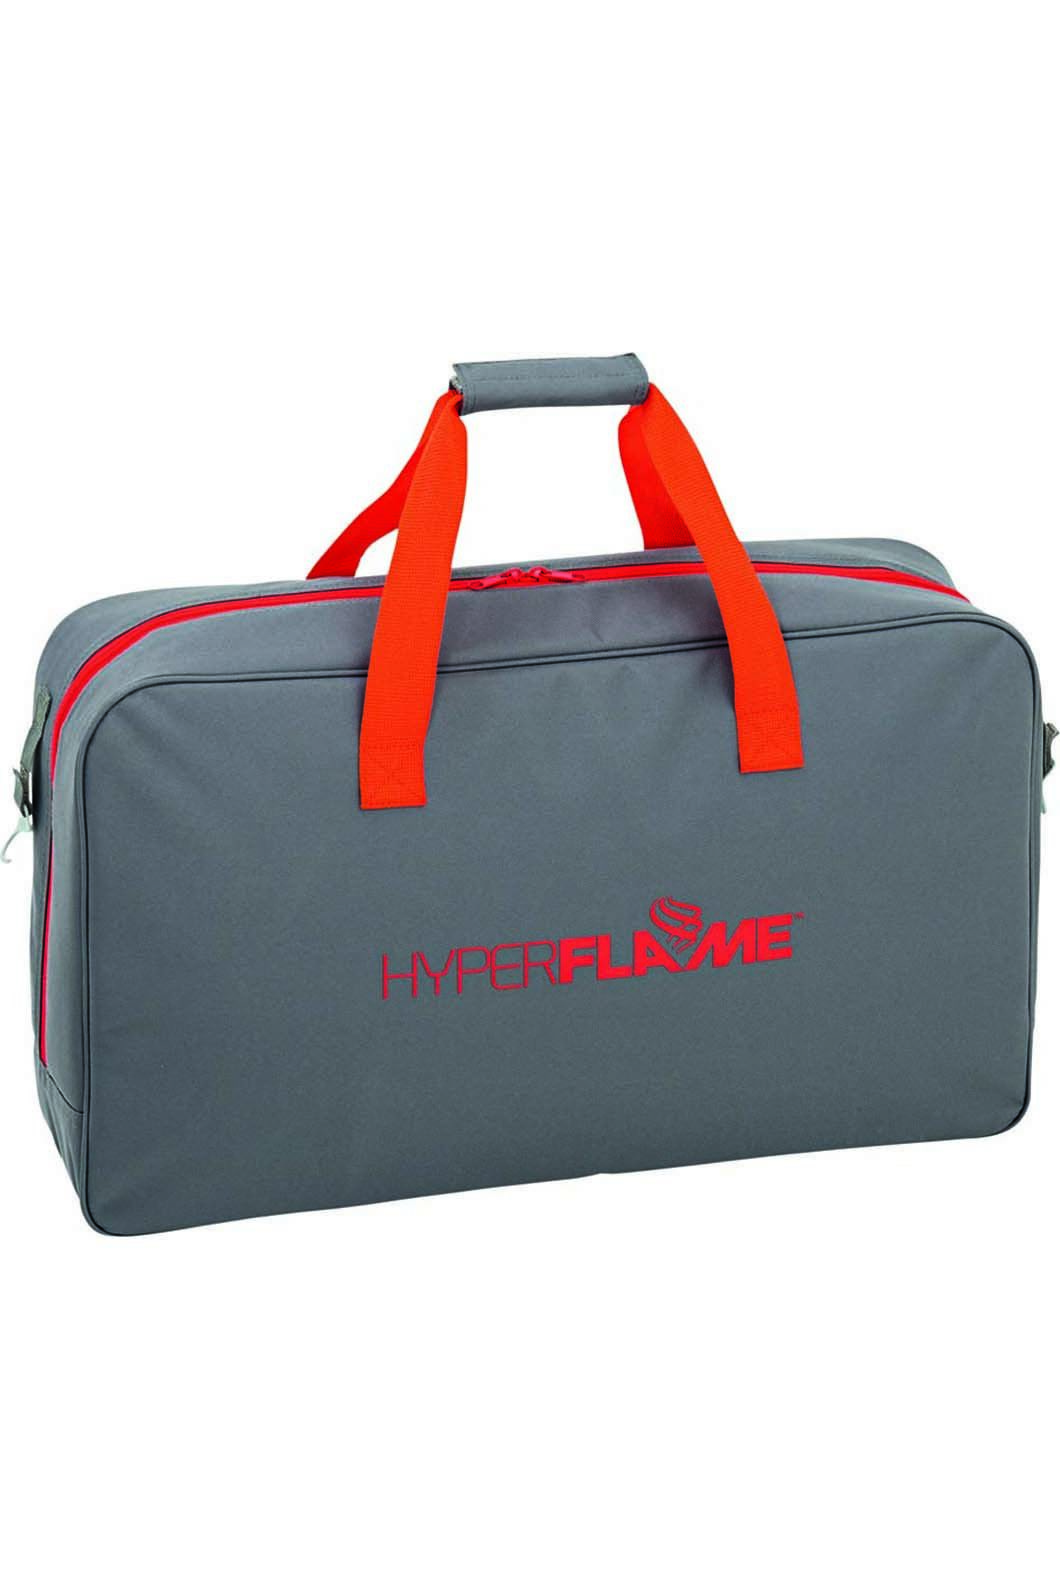 Coleman Hyperflame Stove Soft Carry Bag, None, hi-res